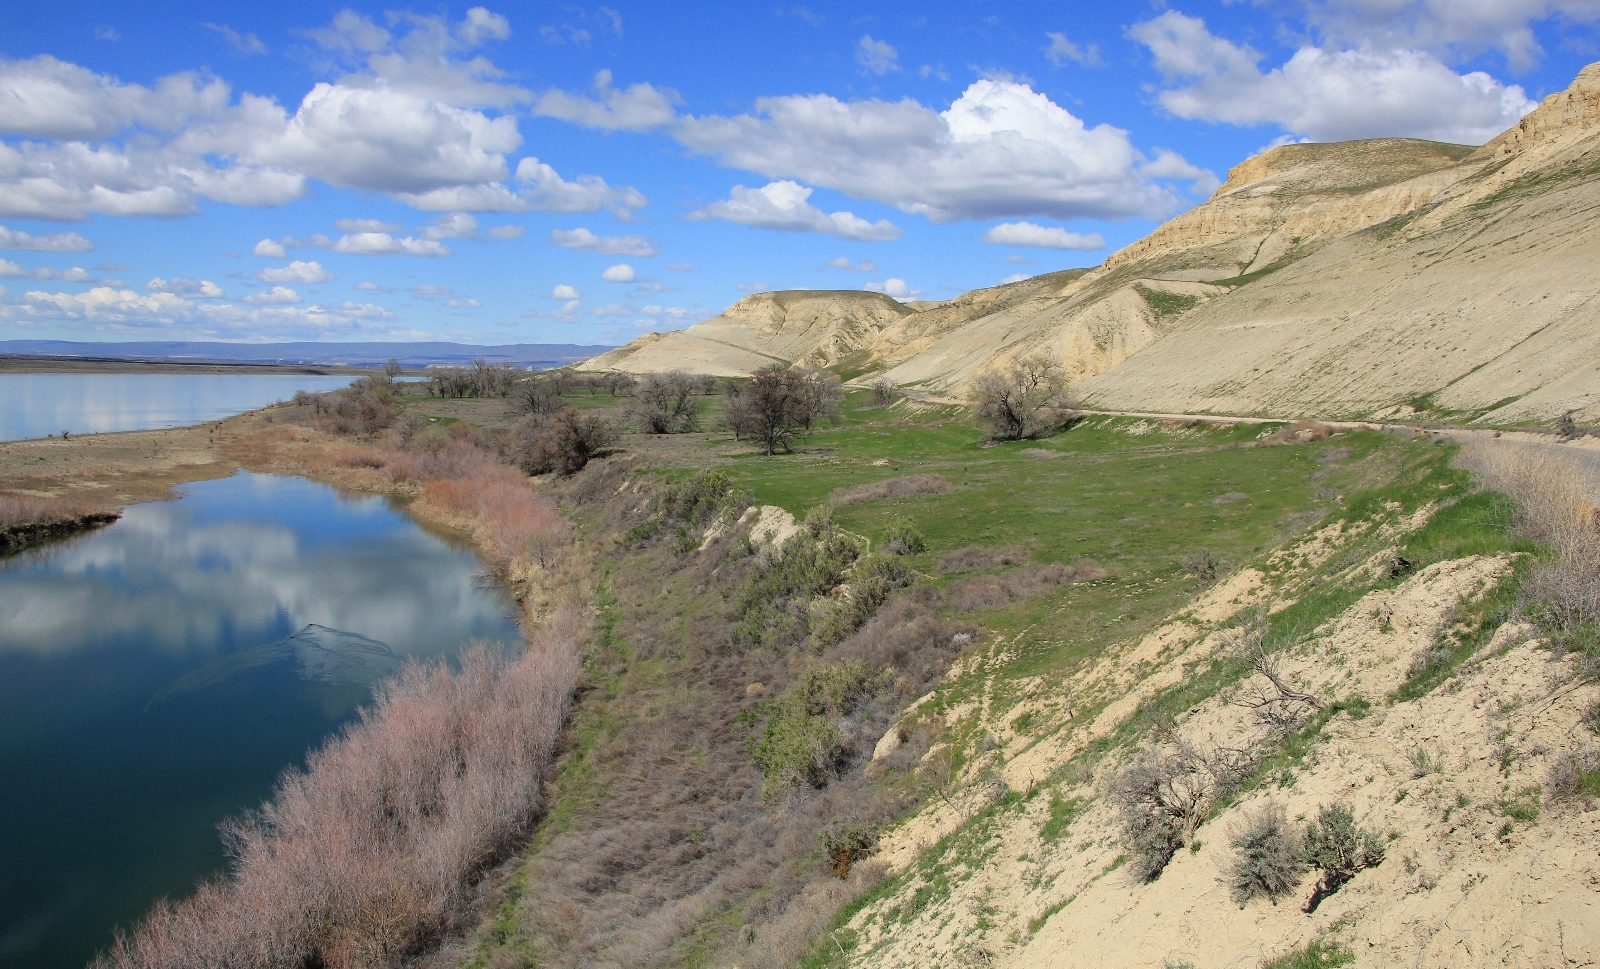 03-25-16 White Bluffs South (29)